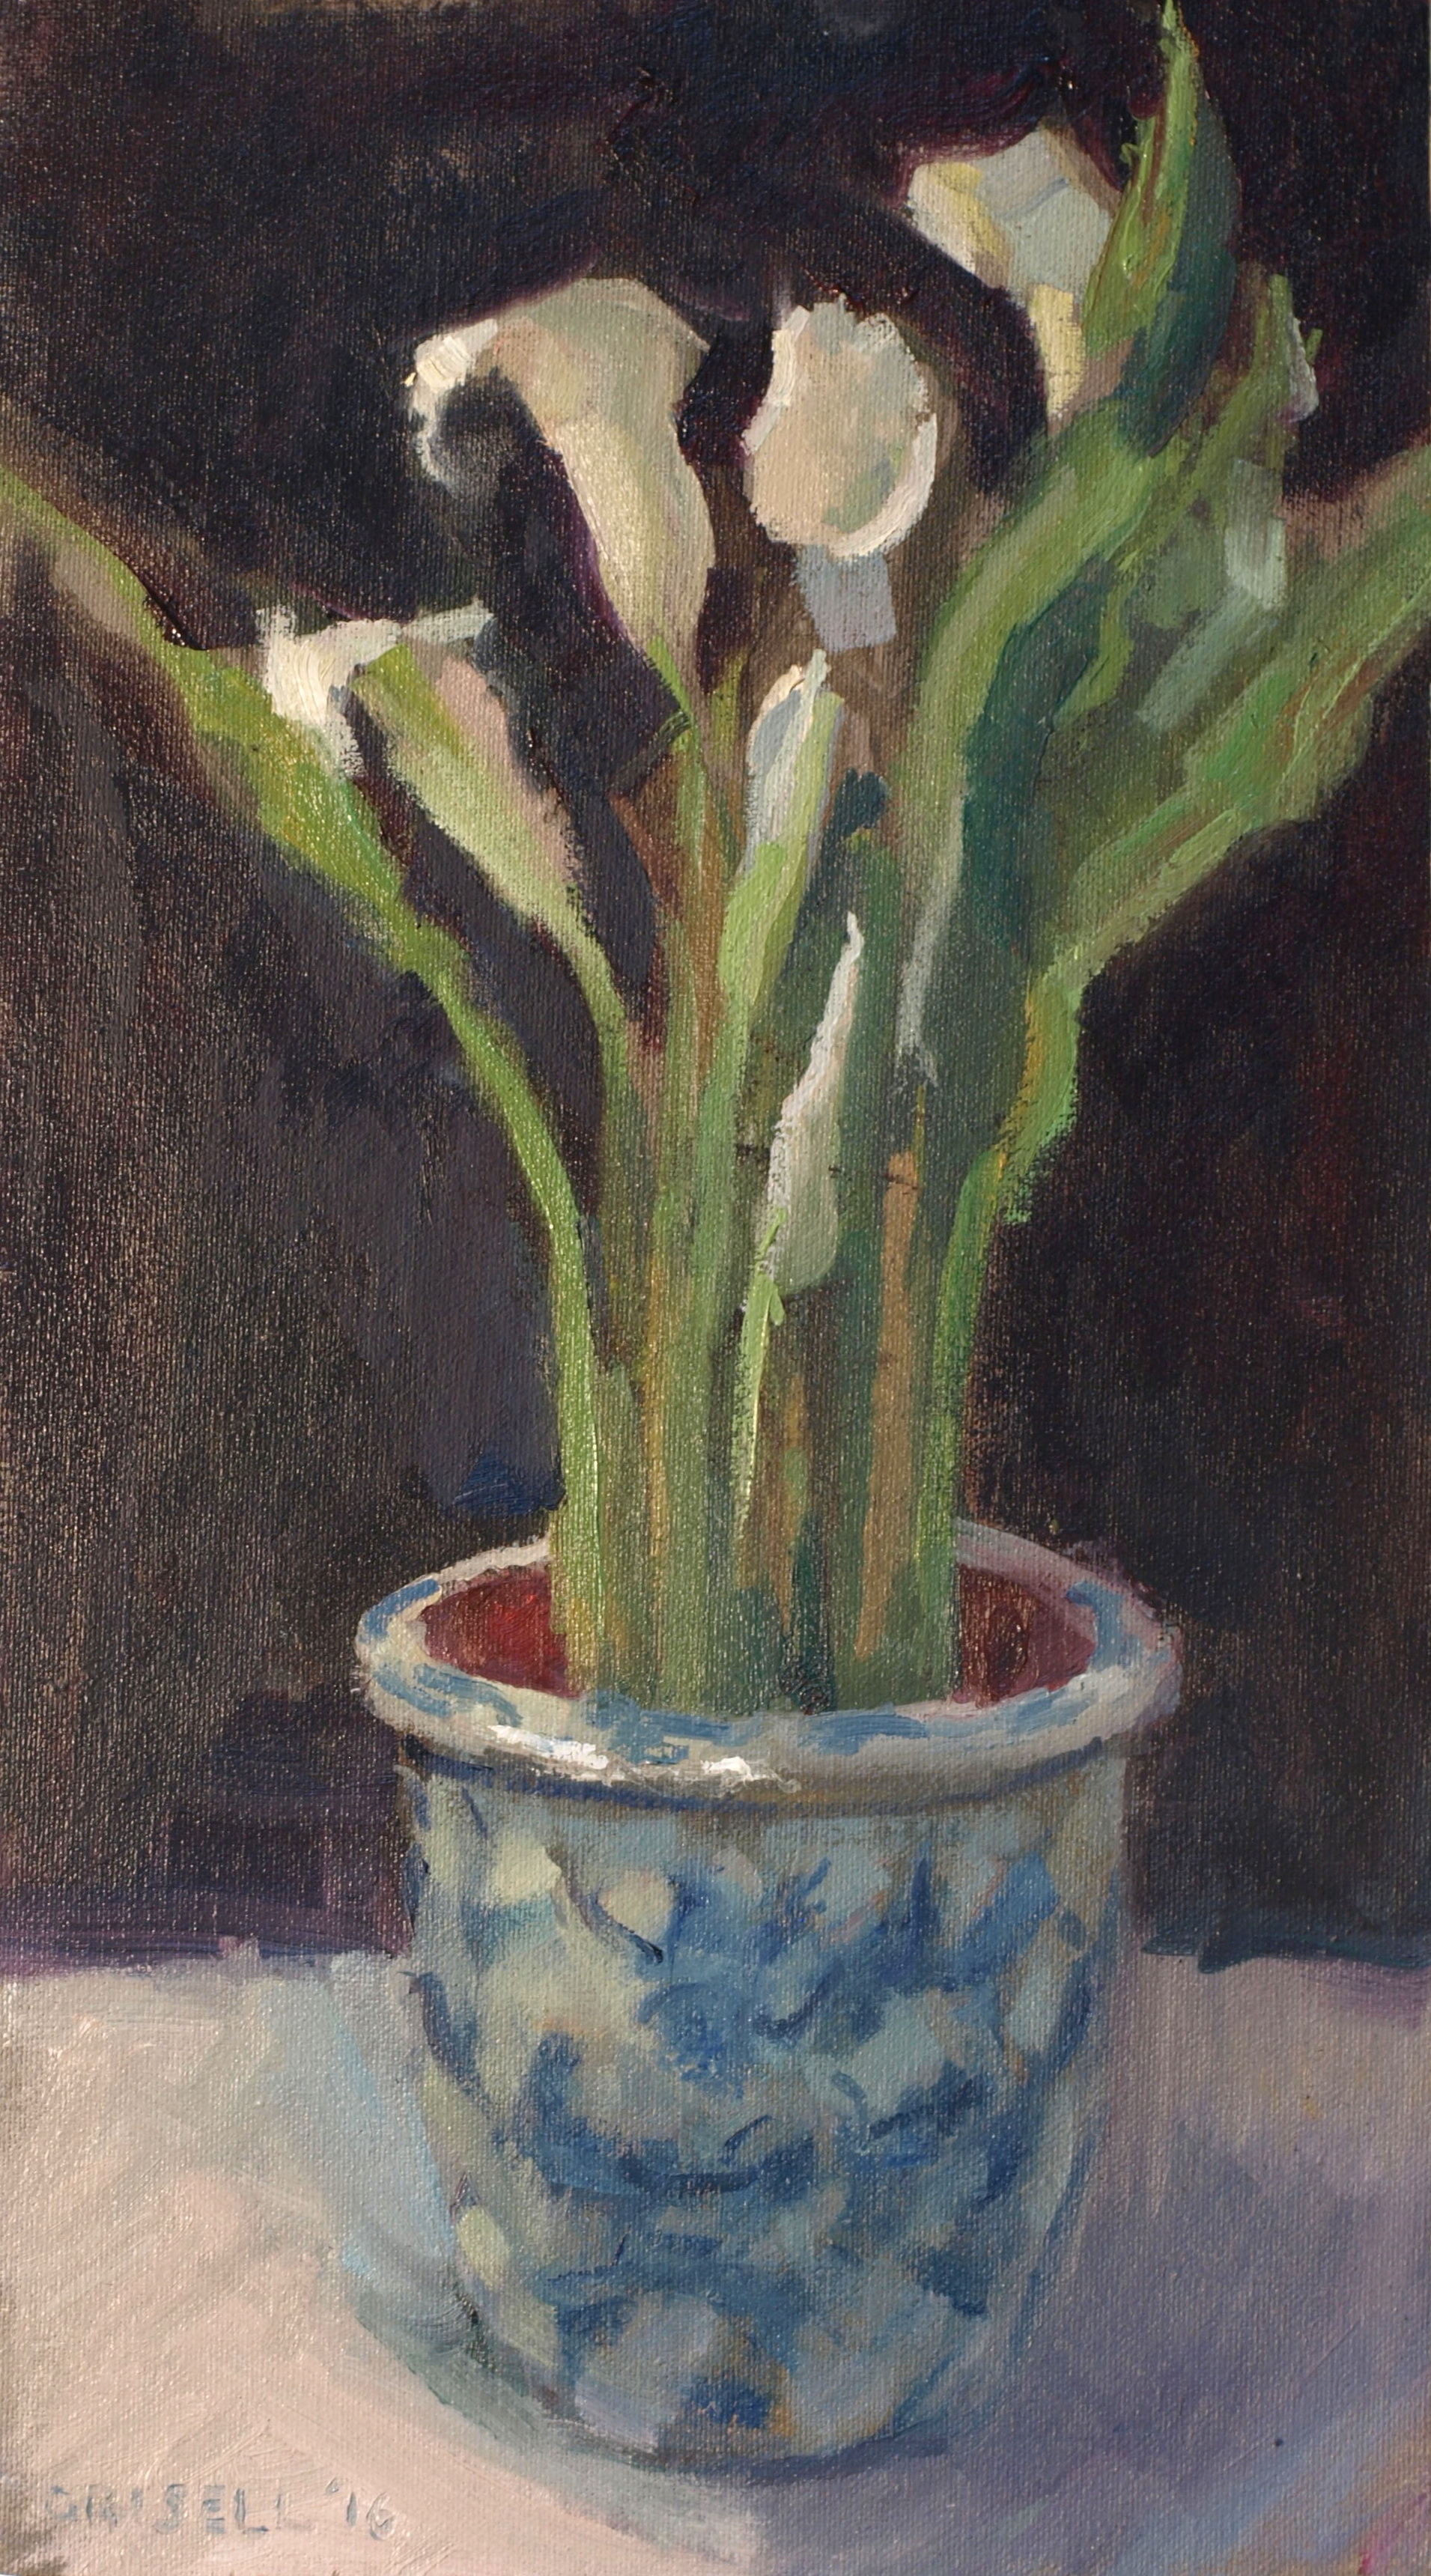 Callas in Ceramic, Oil on Canvas on Panel, 16 x 9 Inches, by Susan Grisell, $250